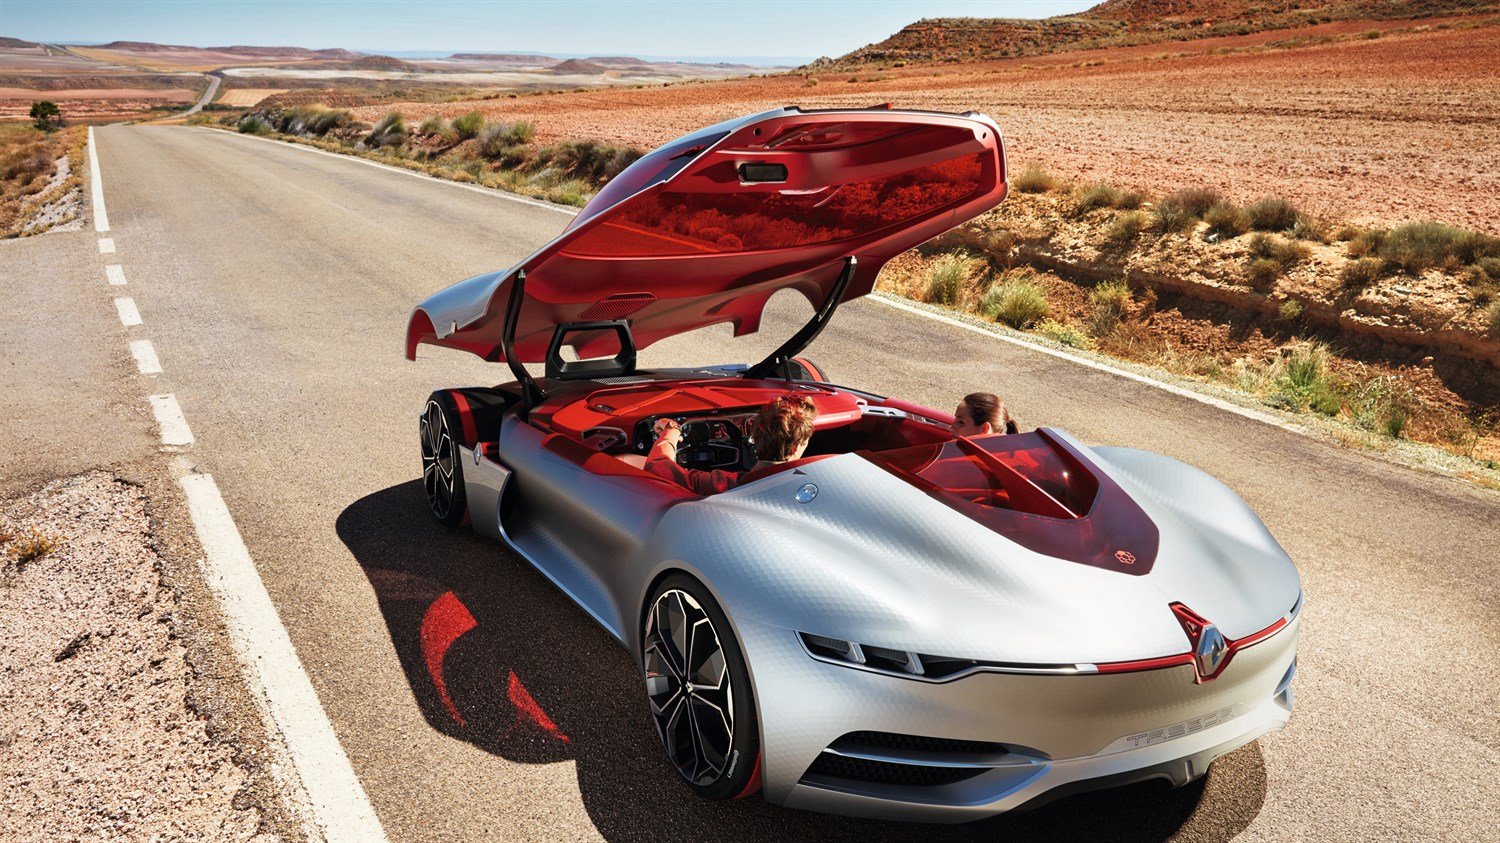 Renault TREZOR Concept - couple in the car